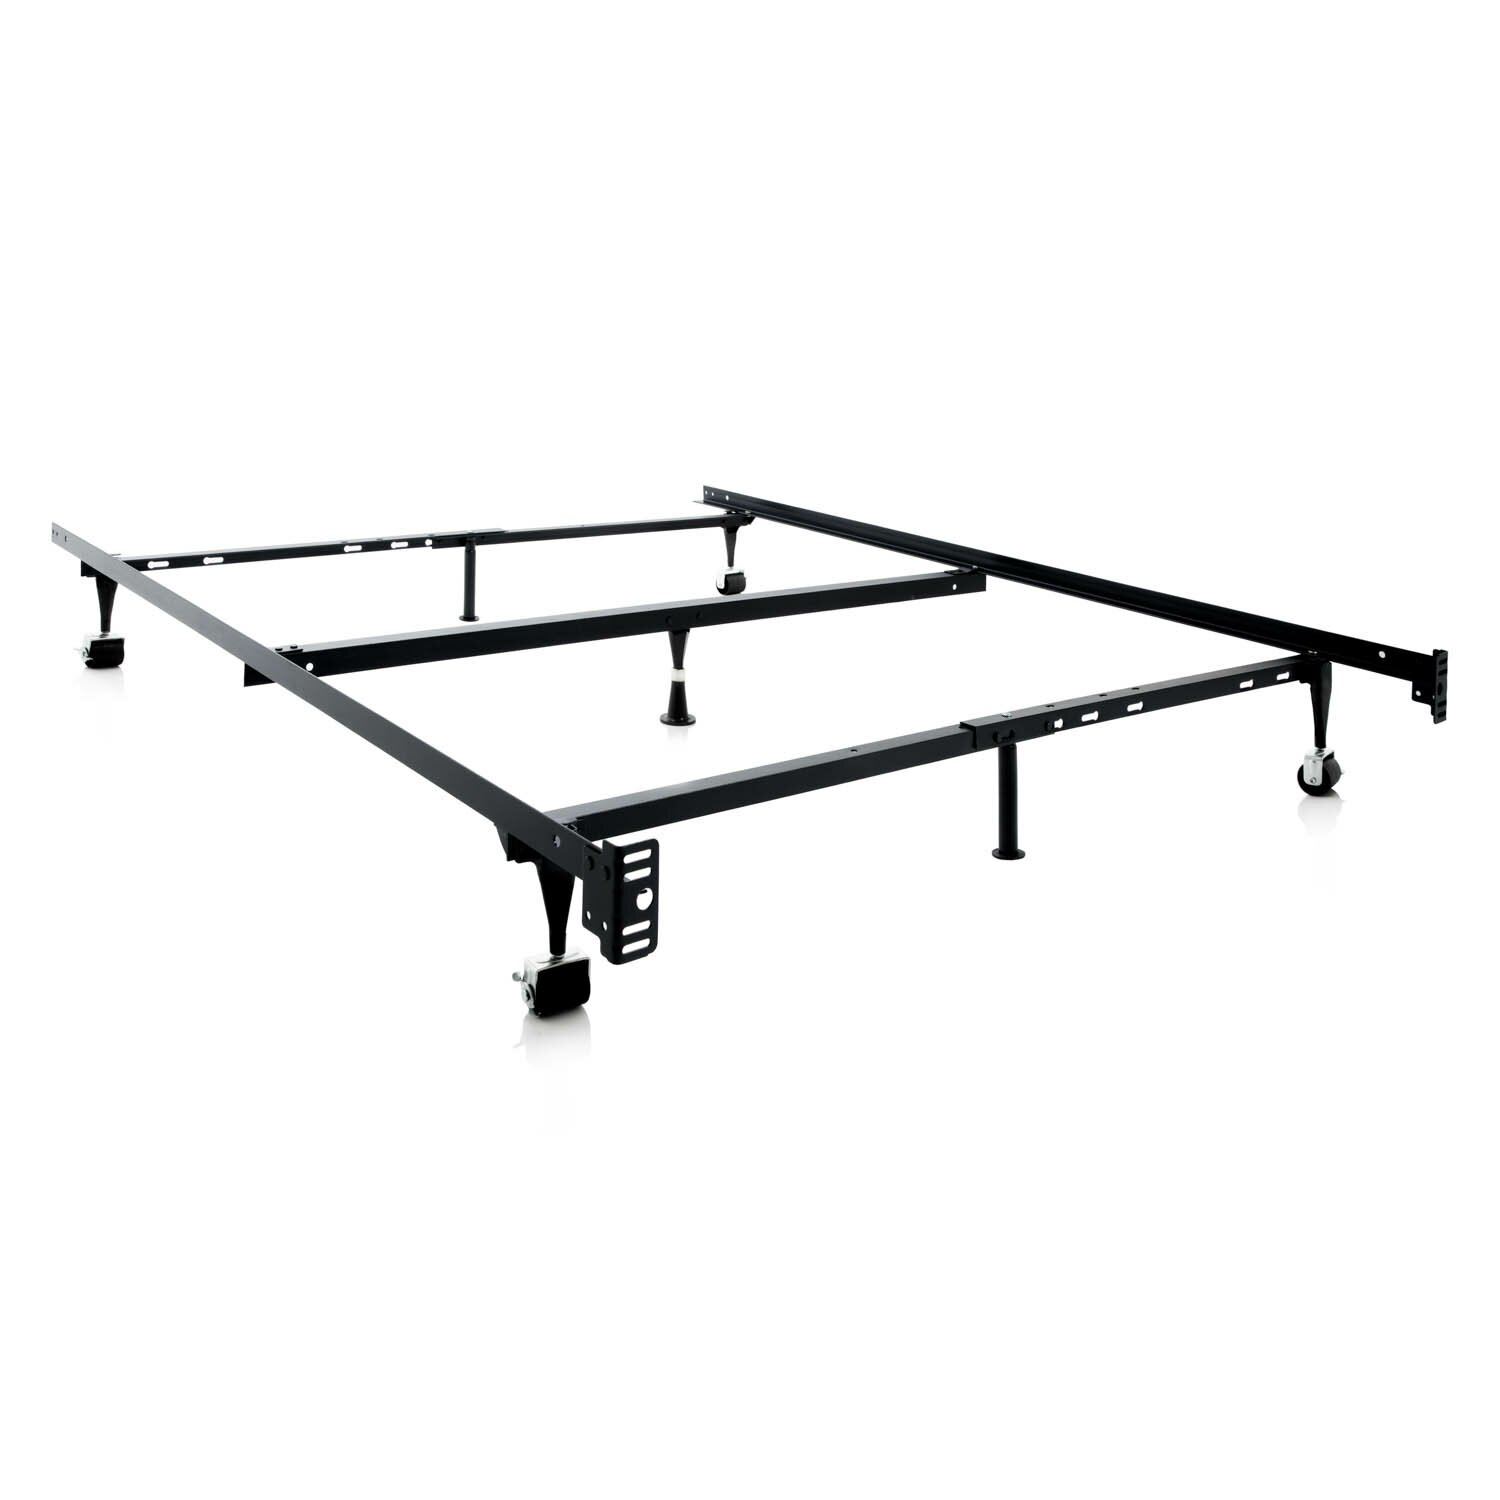 heavy duty 7 leg adjustable metal bed frame with center support and rug roller